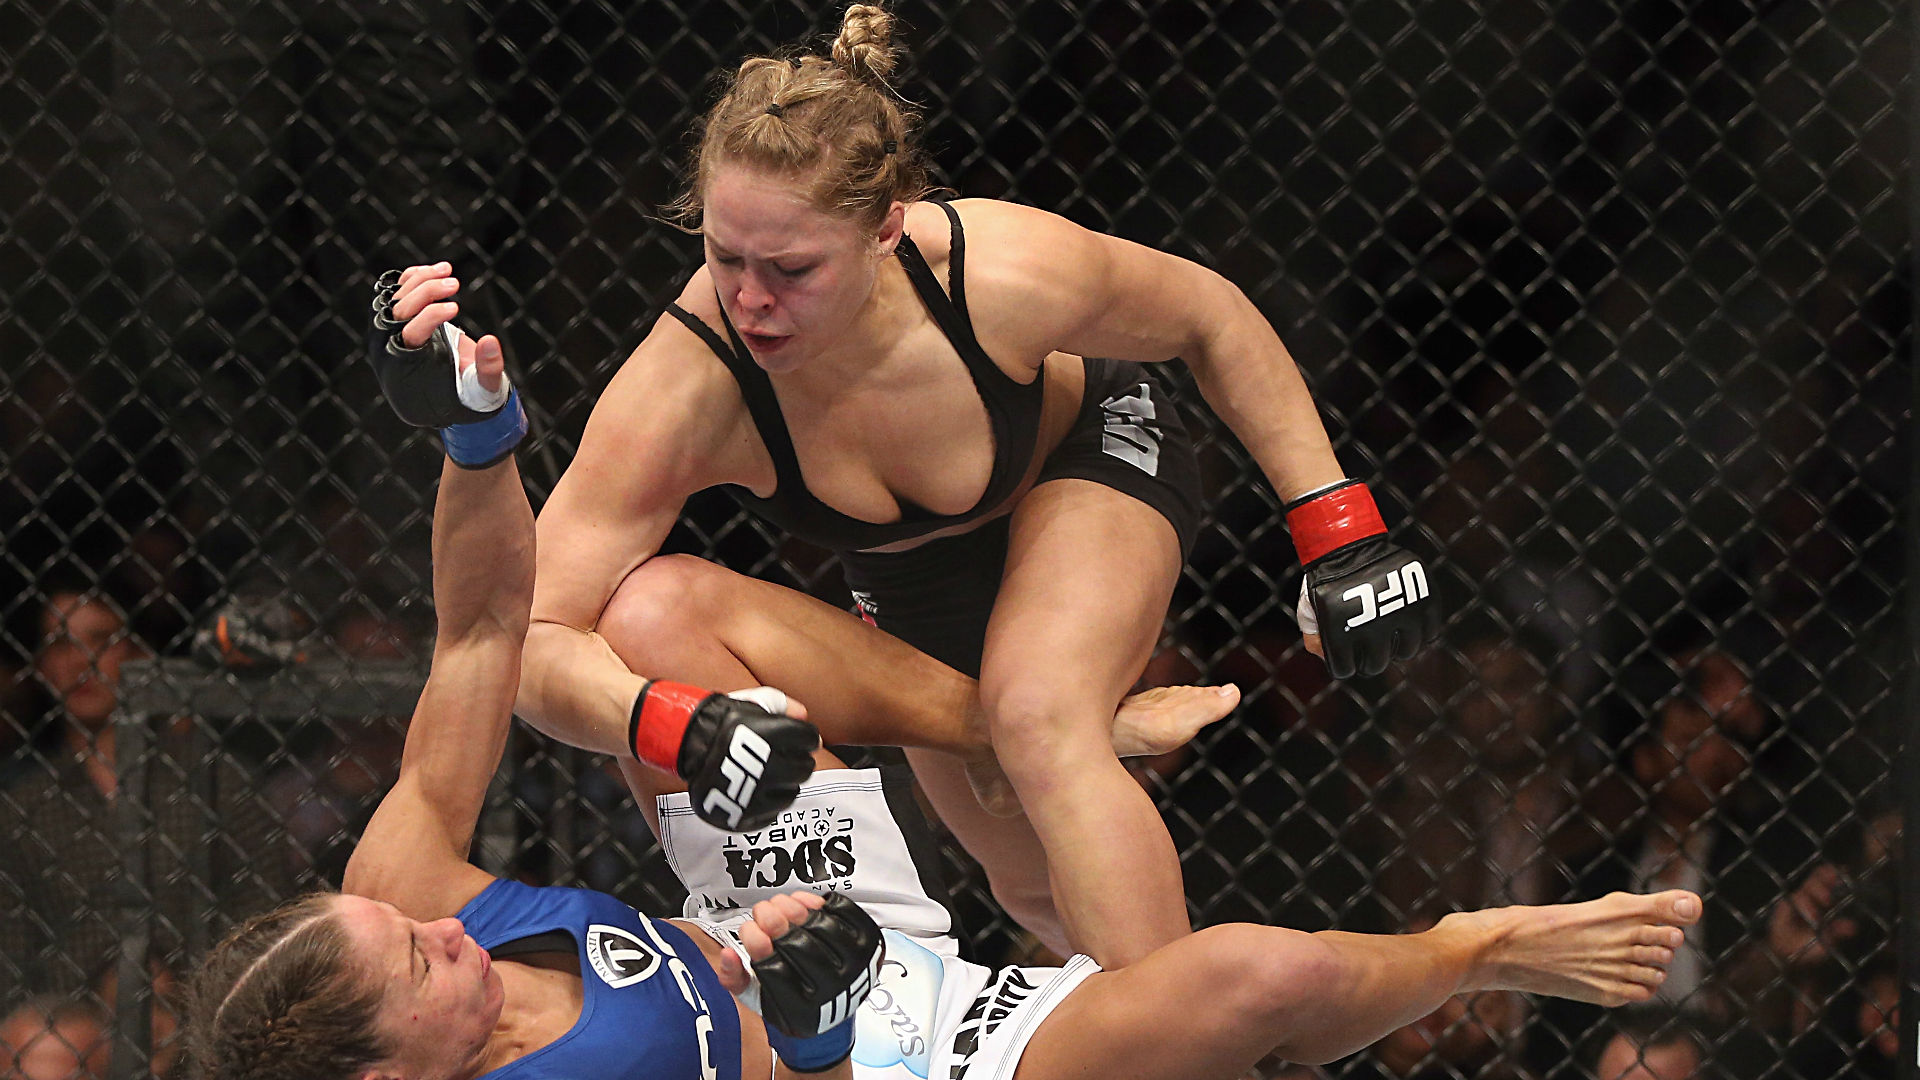 UFC 184 odds and picks – Ronda Rousey faces toughest opponent yet